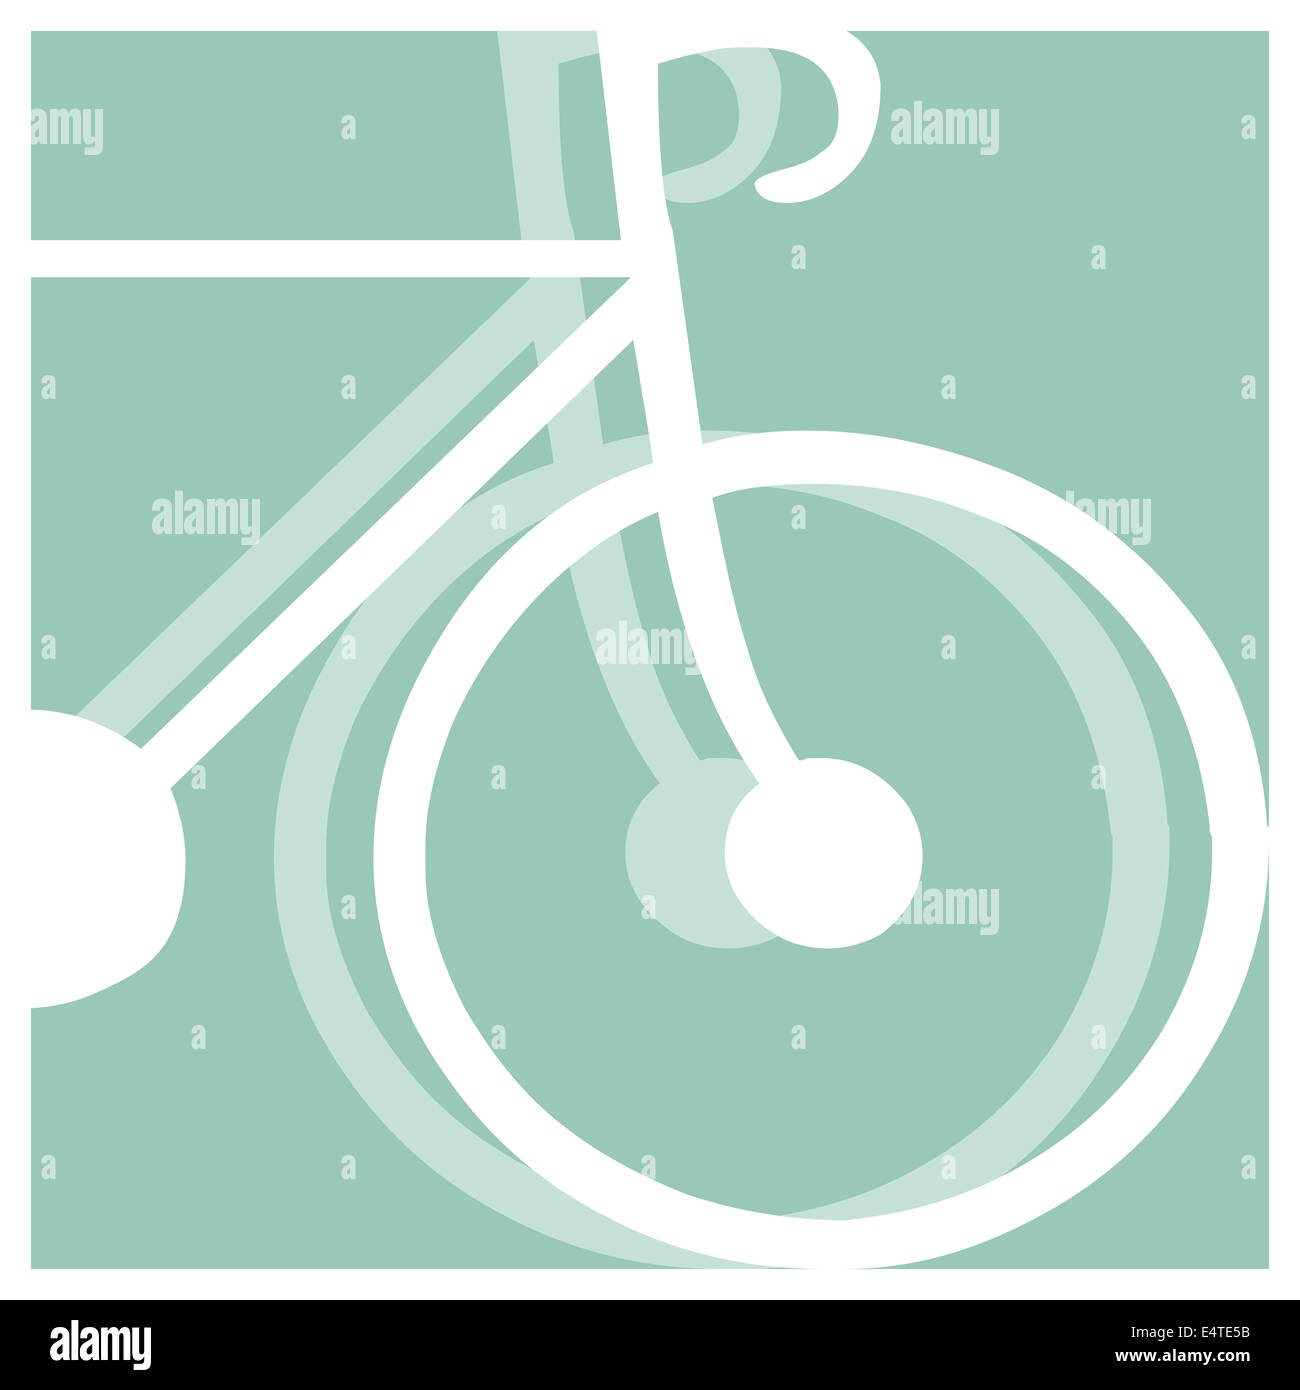 bicycling pictogram - Stock Image